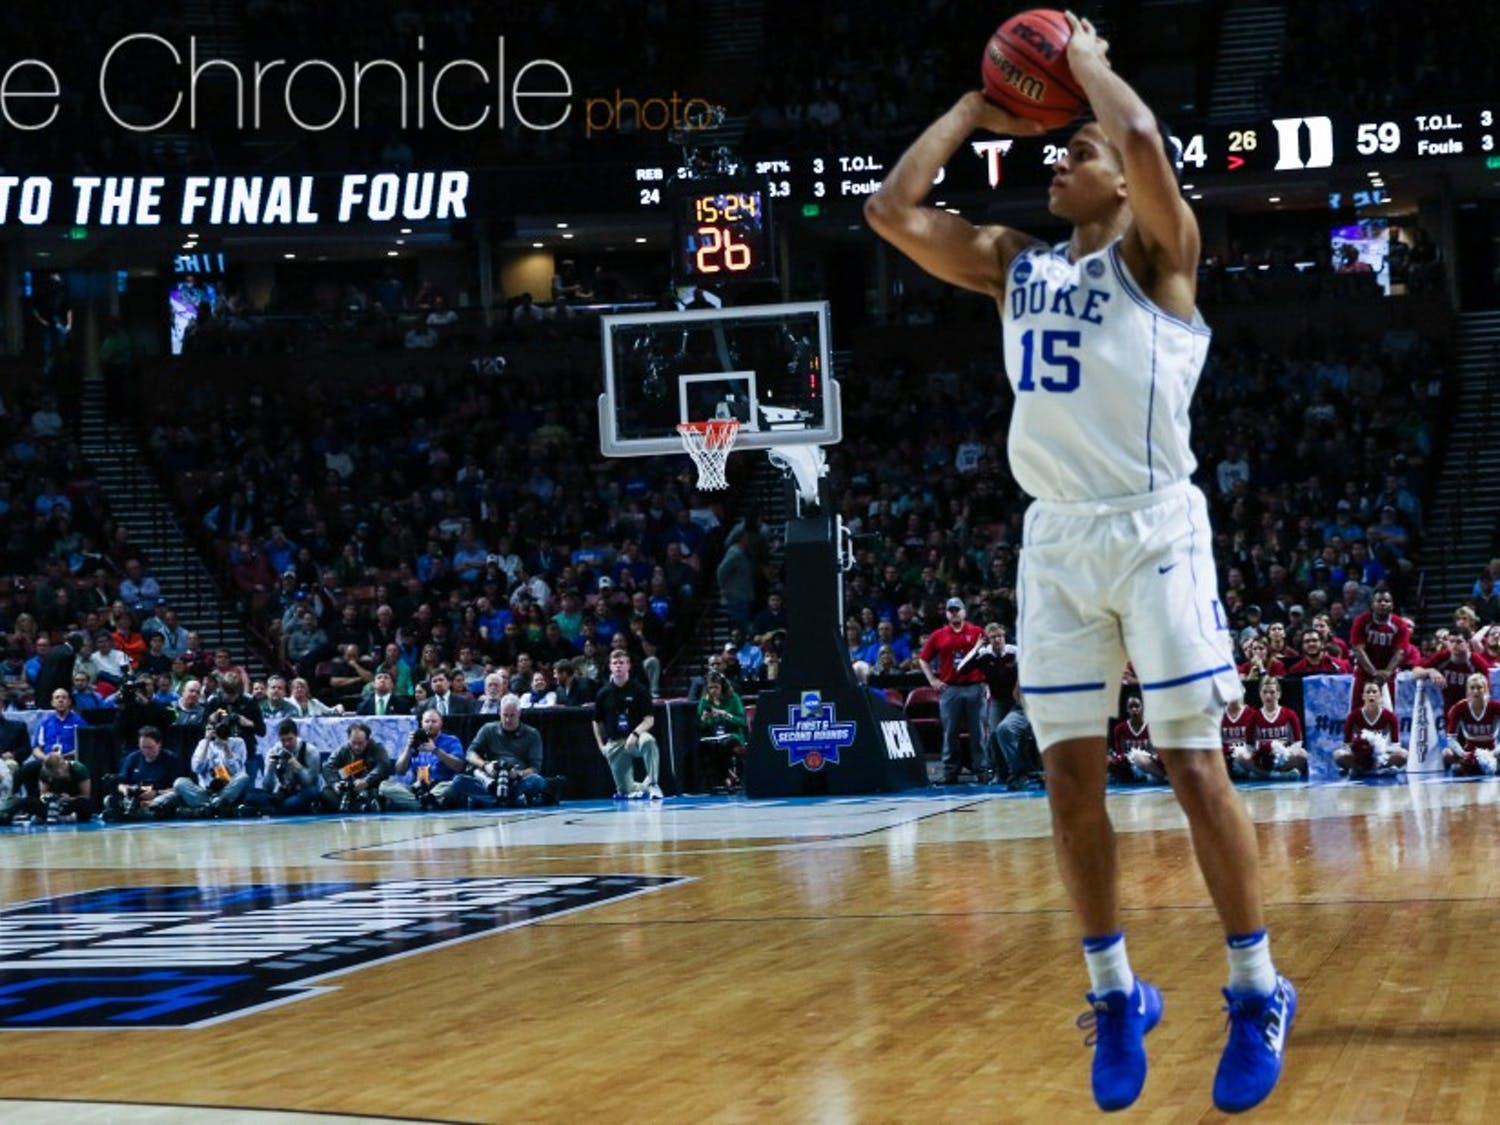 Freshman Frank Jackson scored 14 points Friday as he continues his late-season surge.